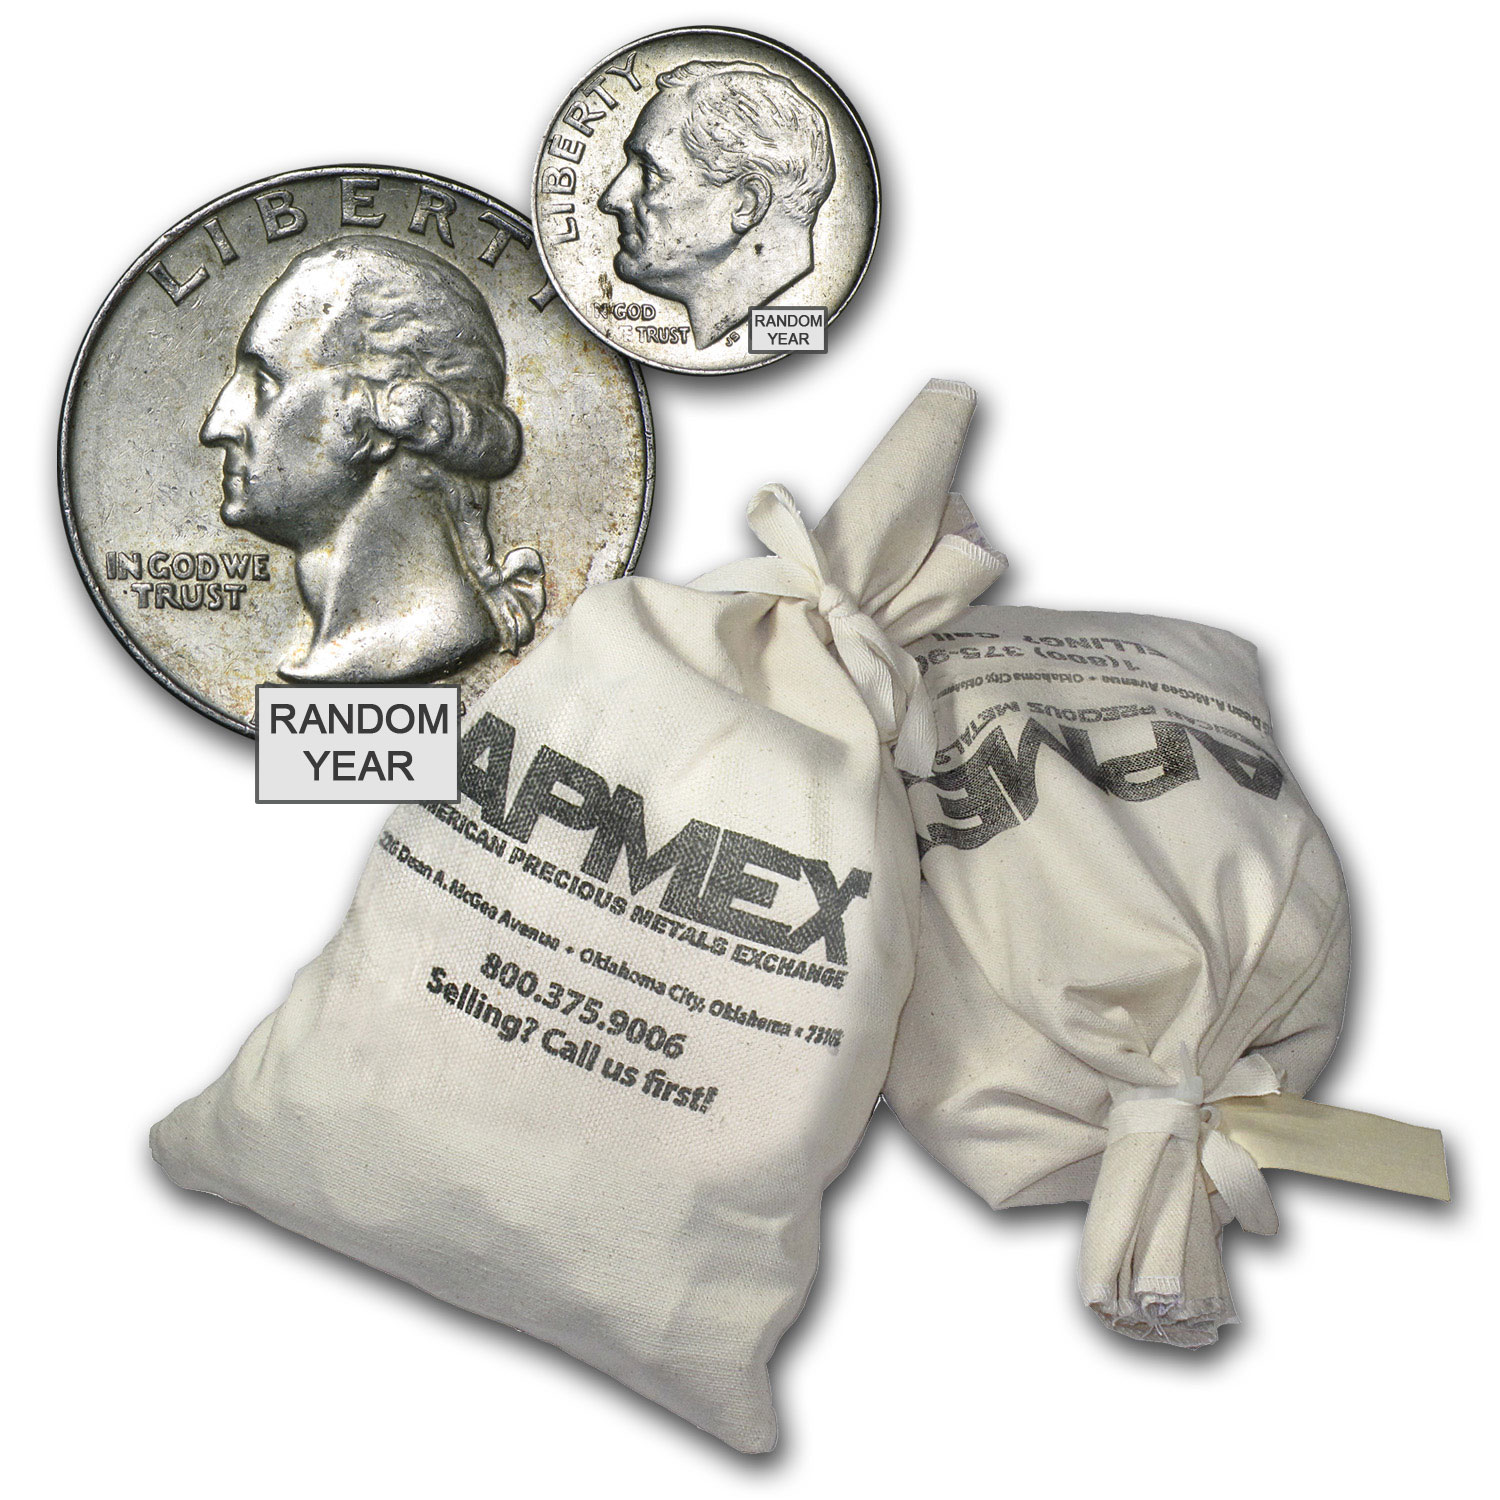 90% Silver Coins - $1,000 Face-Value Bag